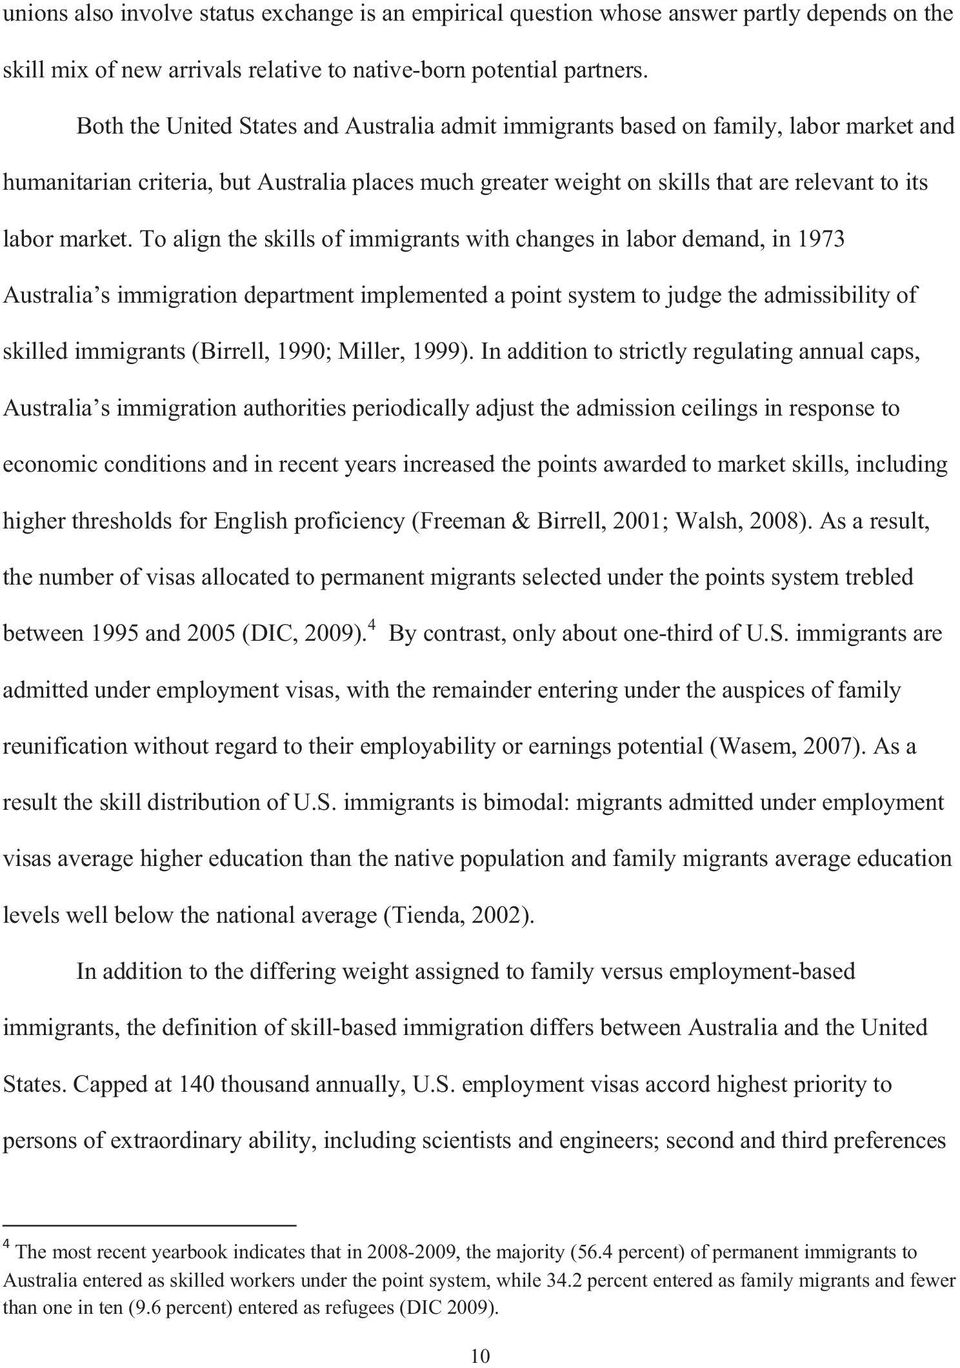 To align the skills of immigrants with changes in labor demand, in 1973 Australia s immigration department implemented a point system to judge the admissibility of skilled immigrants (Birrell, 1990;